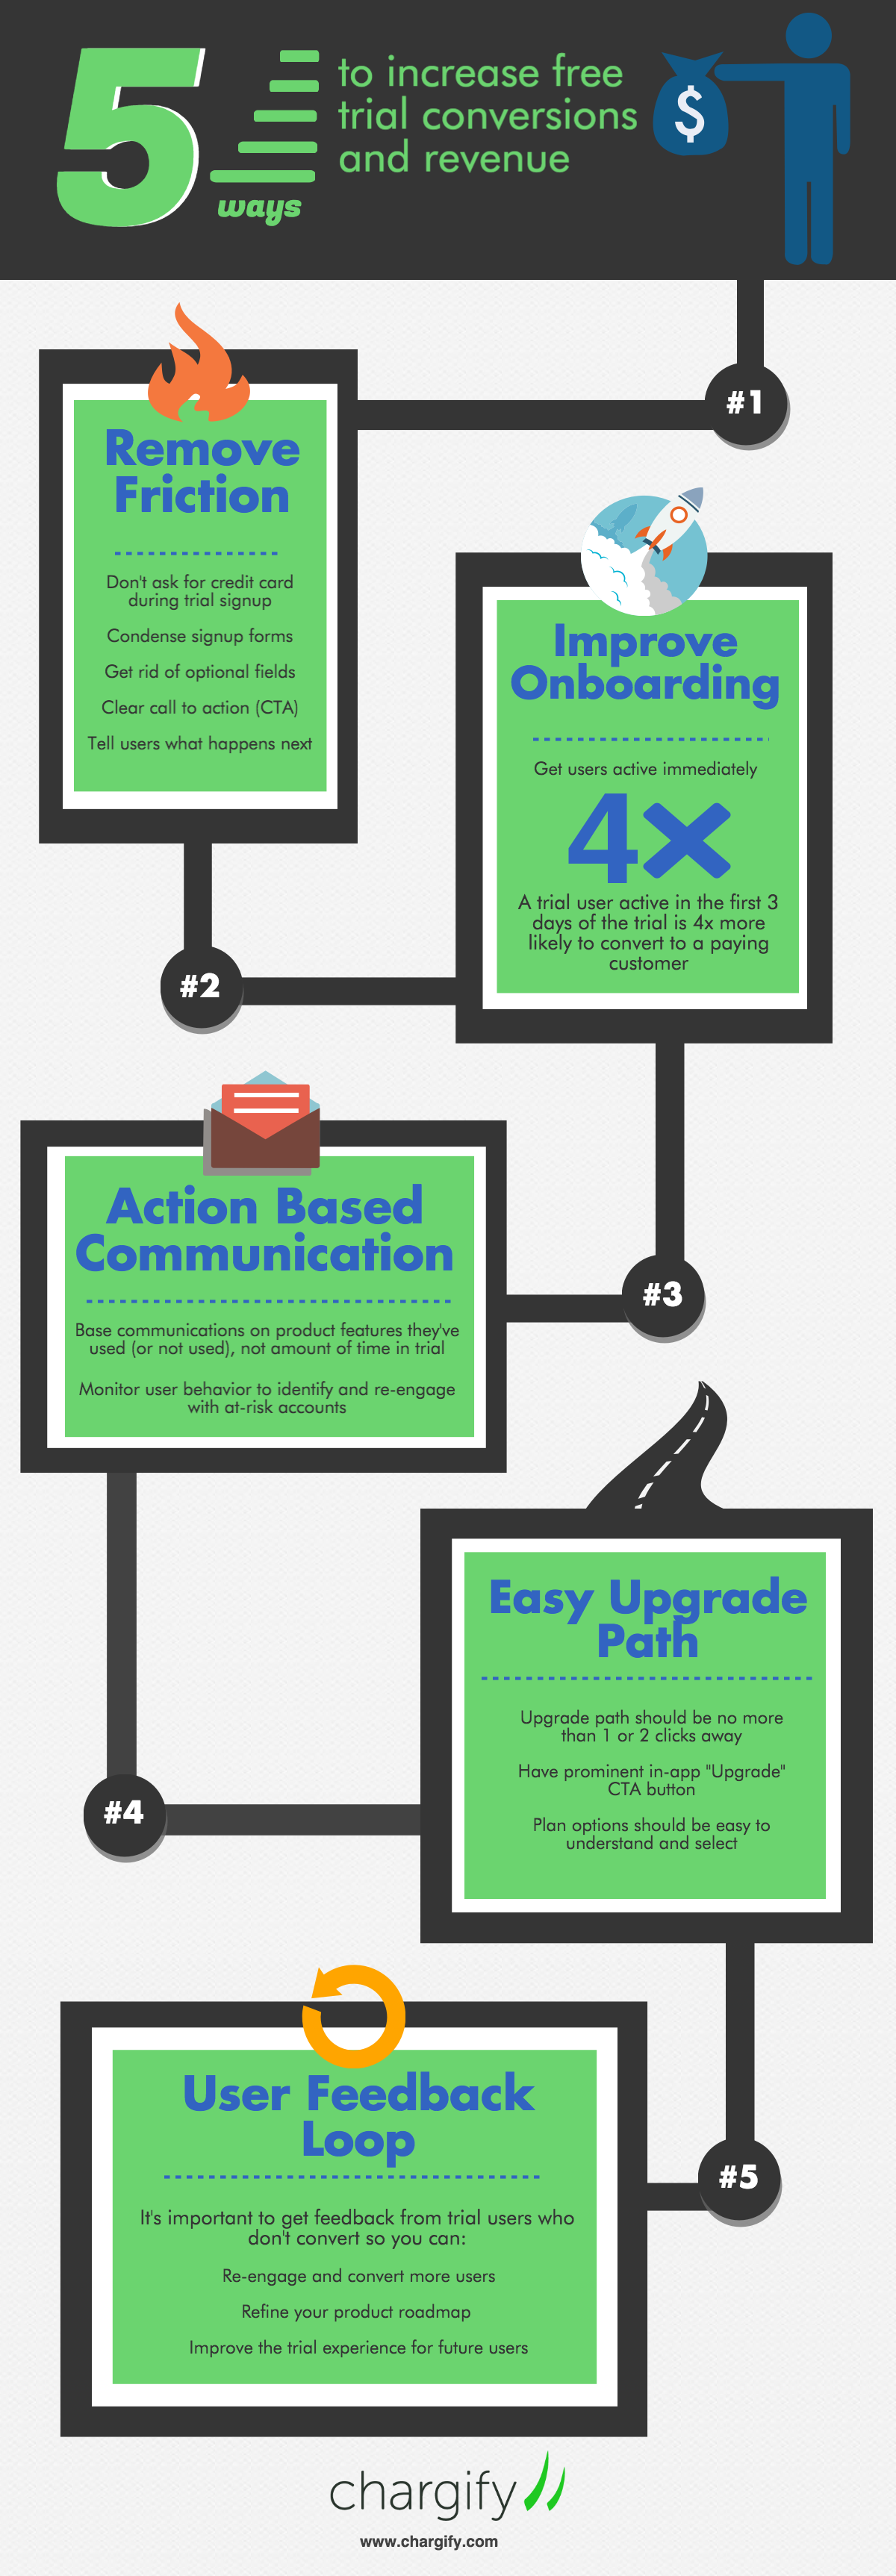 5 Ways to Increase Free Trial Conversions and Revenue Roadmap